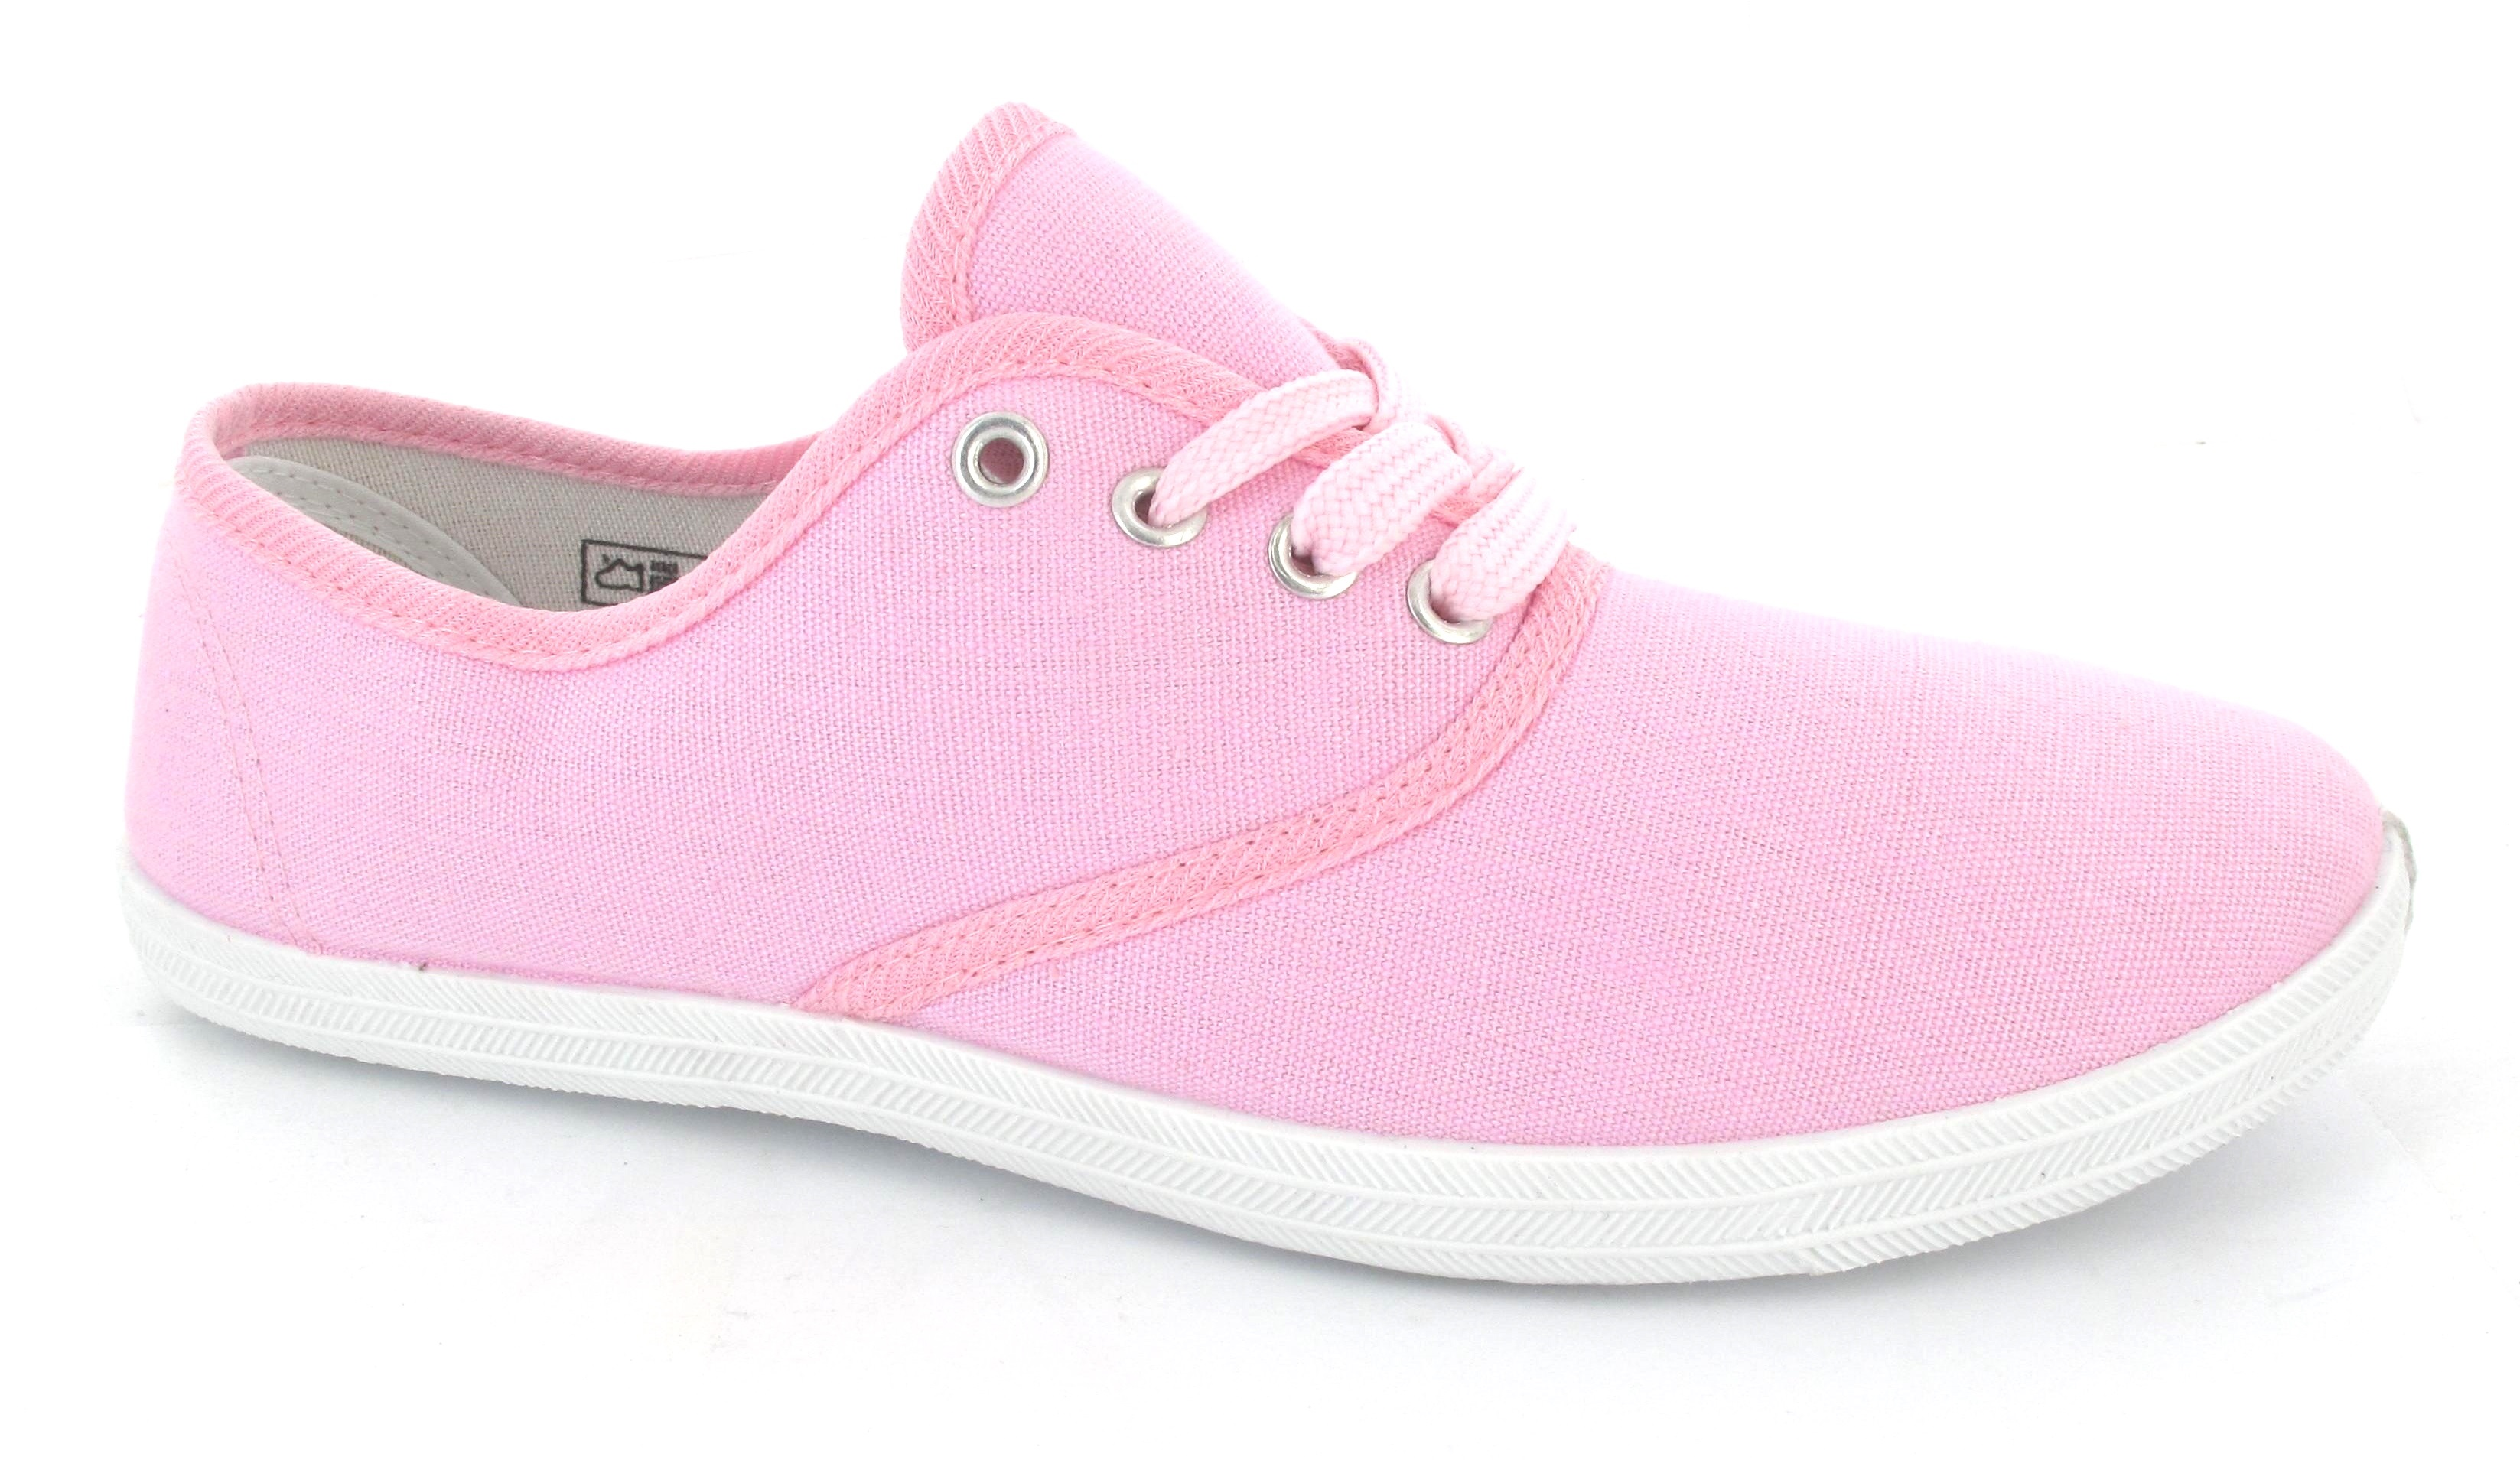 Girls pink glitter plimsolls. Quick view. Add to wishlist. £ Girls light pink satin ruffle plimsolls. Quick view. Add to wishlist. £ Girls black faux fur slip on plimsolls. Quick view. Add to wishlist. £ Girls black RI monogram high top trainers. Quick view. Add to wishlist. £ Girls red faux fur slip on plimsolls.